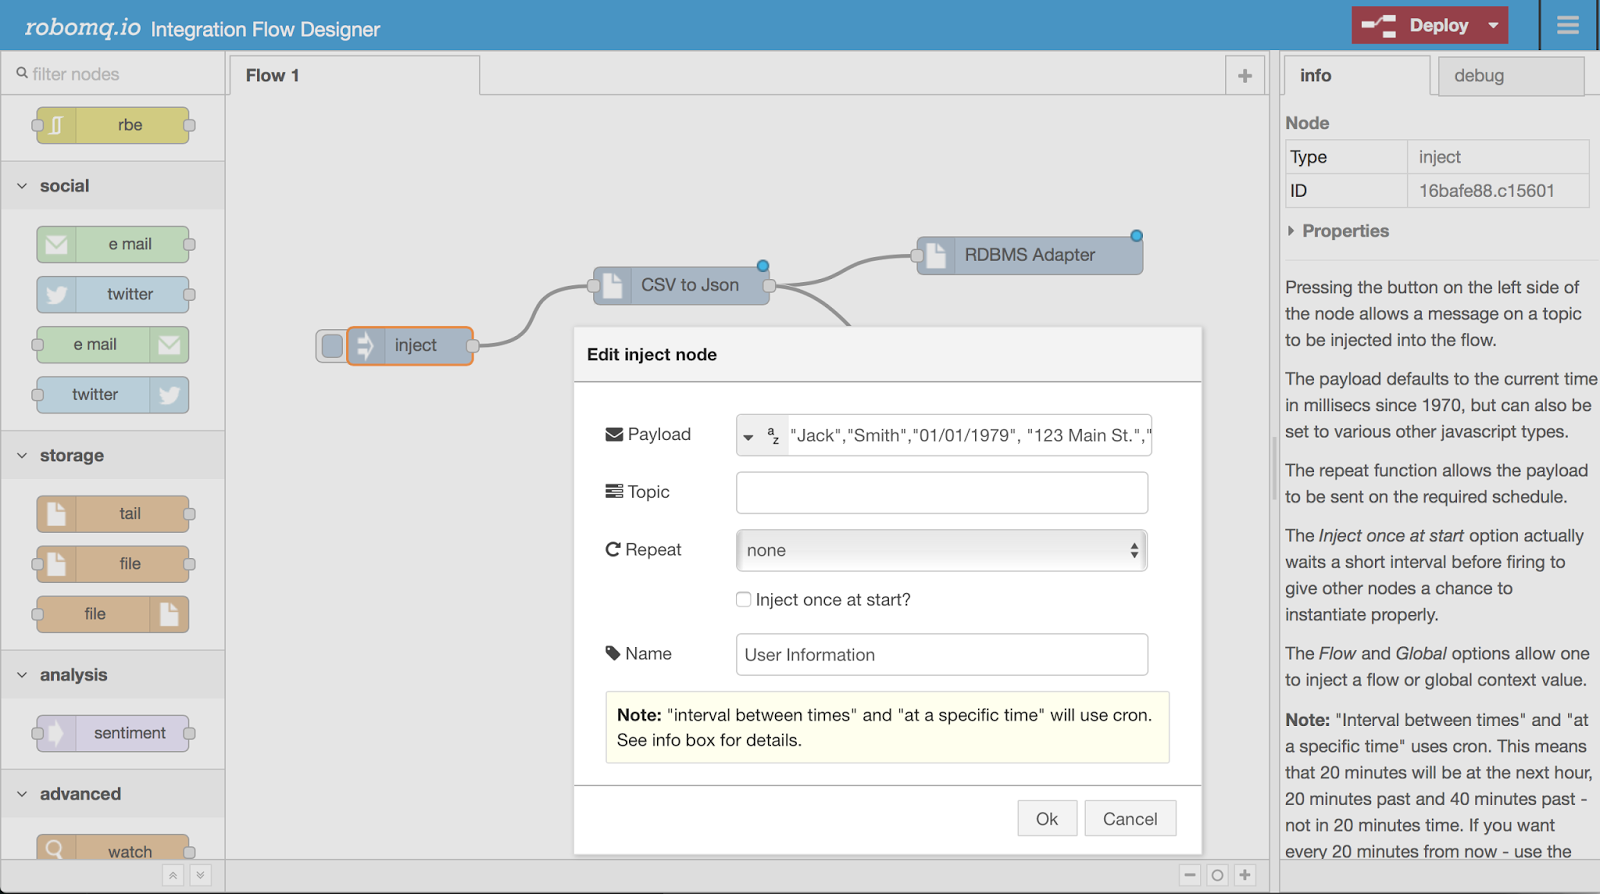 Building business processes using RoboMQ Integration Flow